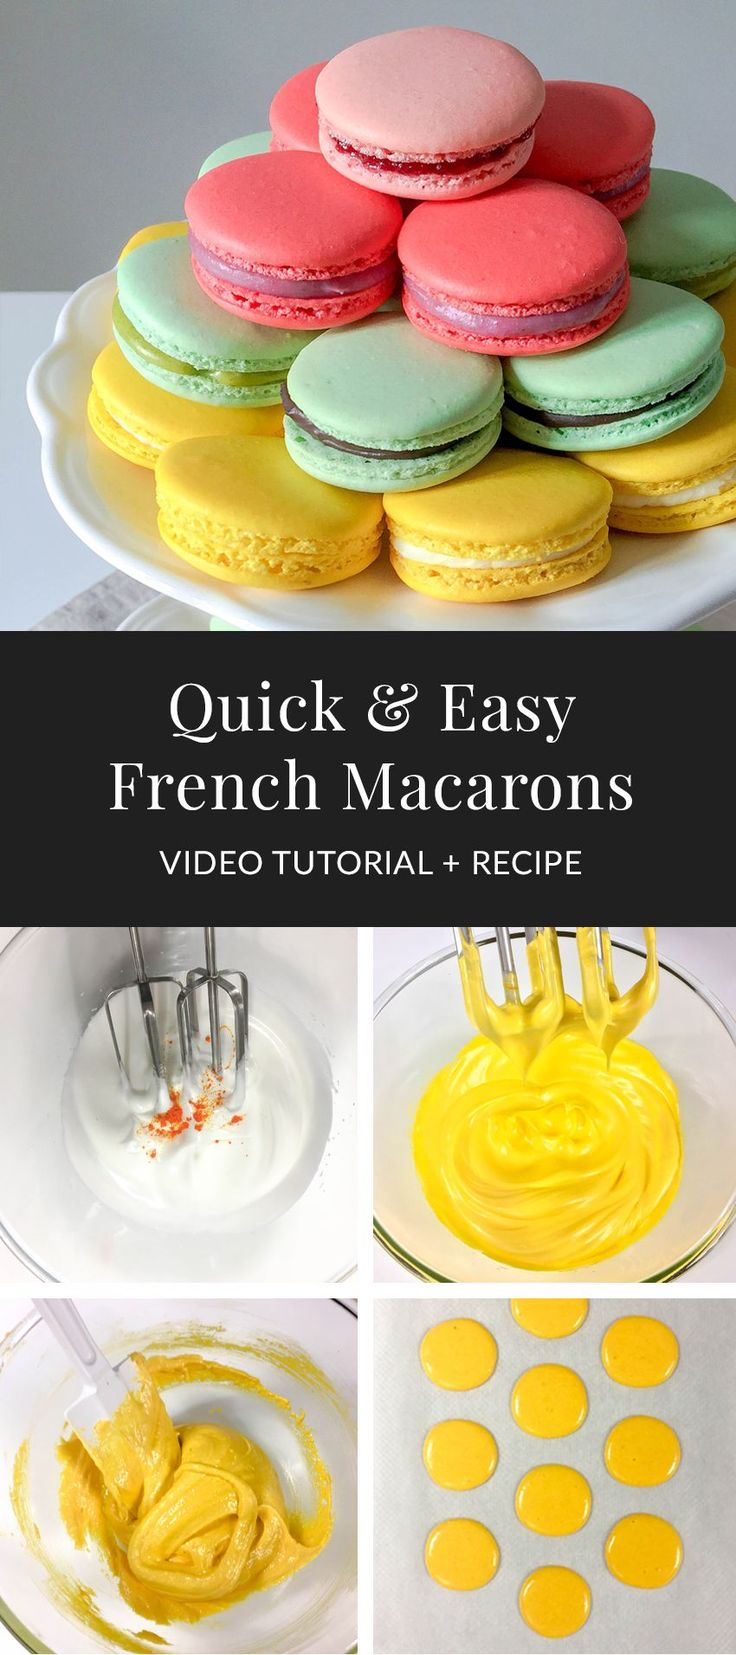 Learn how to make french macarons with the step-by-step video lesson & recipe